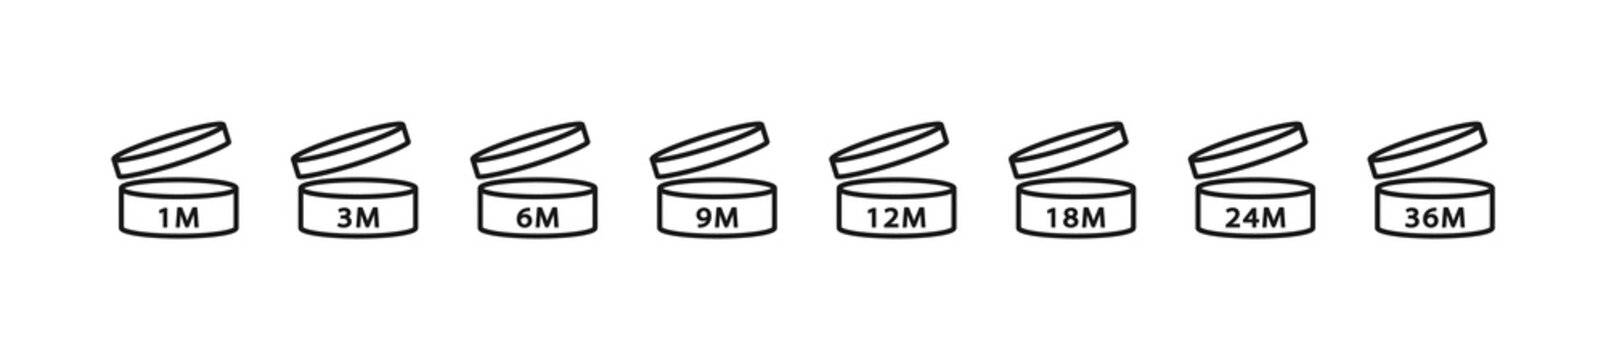 PAO Linear Icons Set. Period after opening. The shelf life of the cosmetics after opening the package in months. 1m, 3m, 6m, 12m, 18m, 24m, 36m month best before product mark. Vector illustration